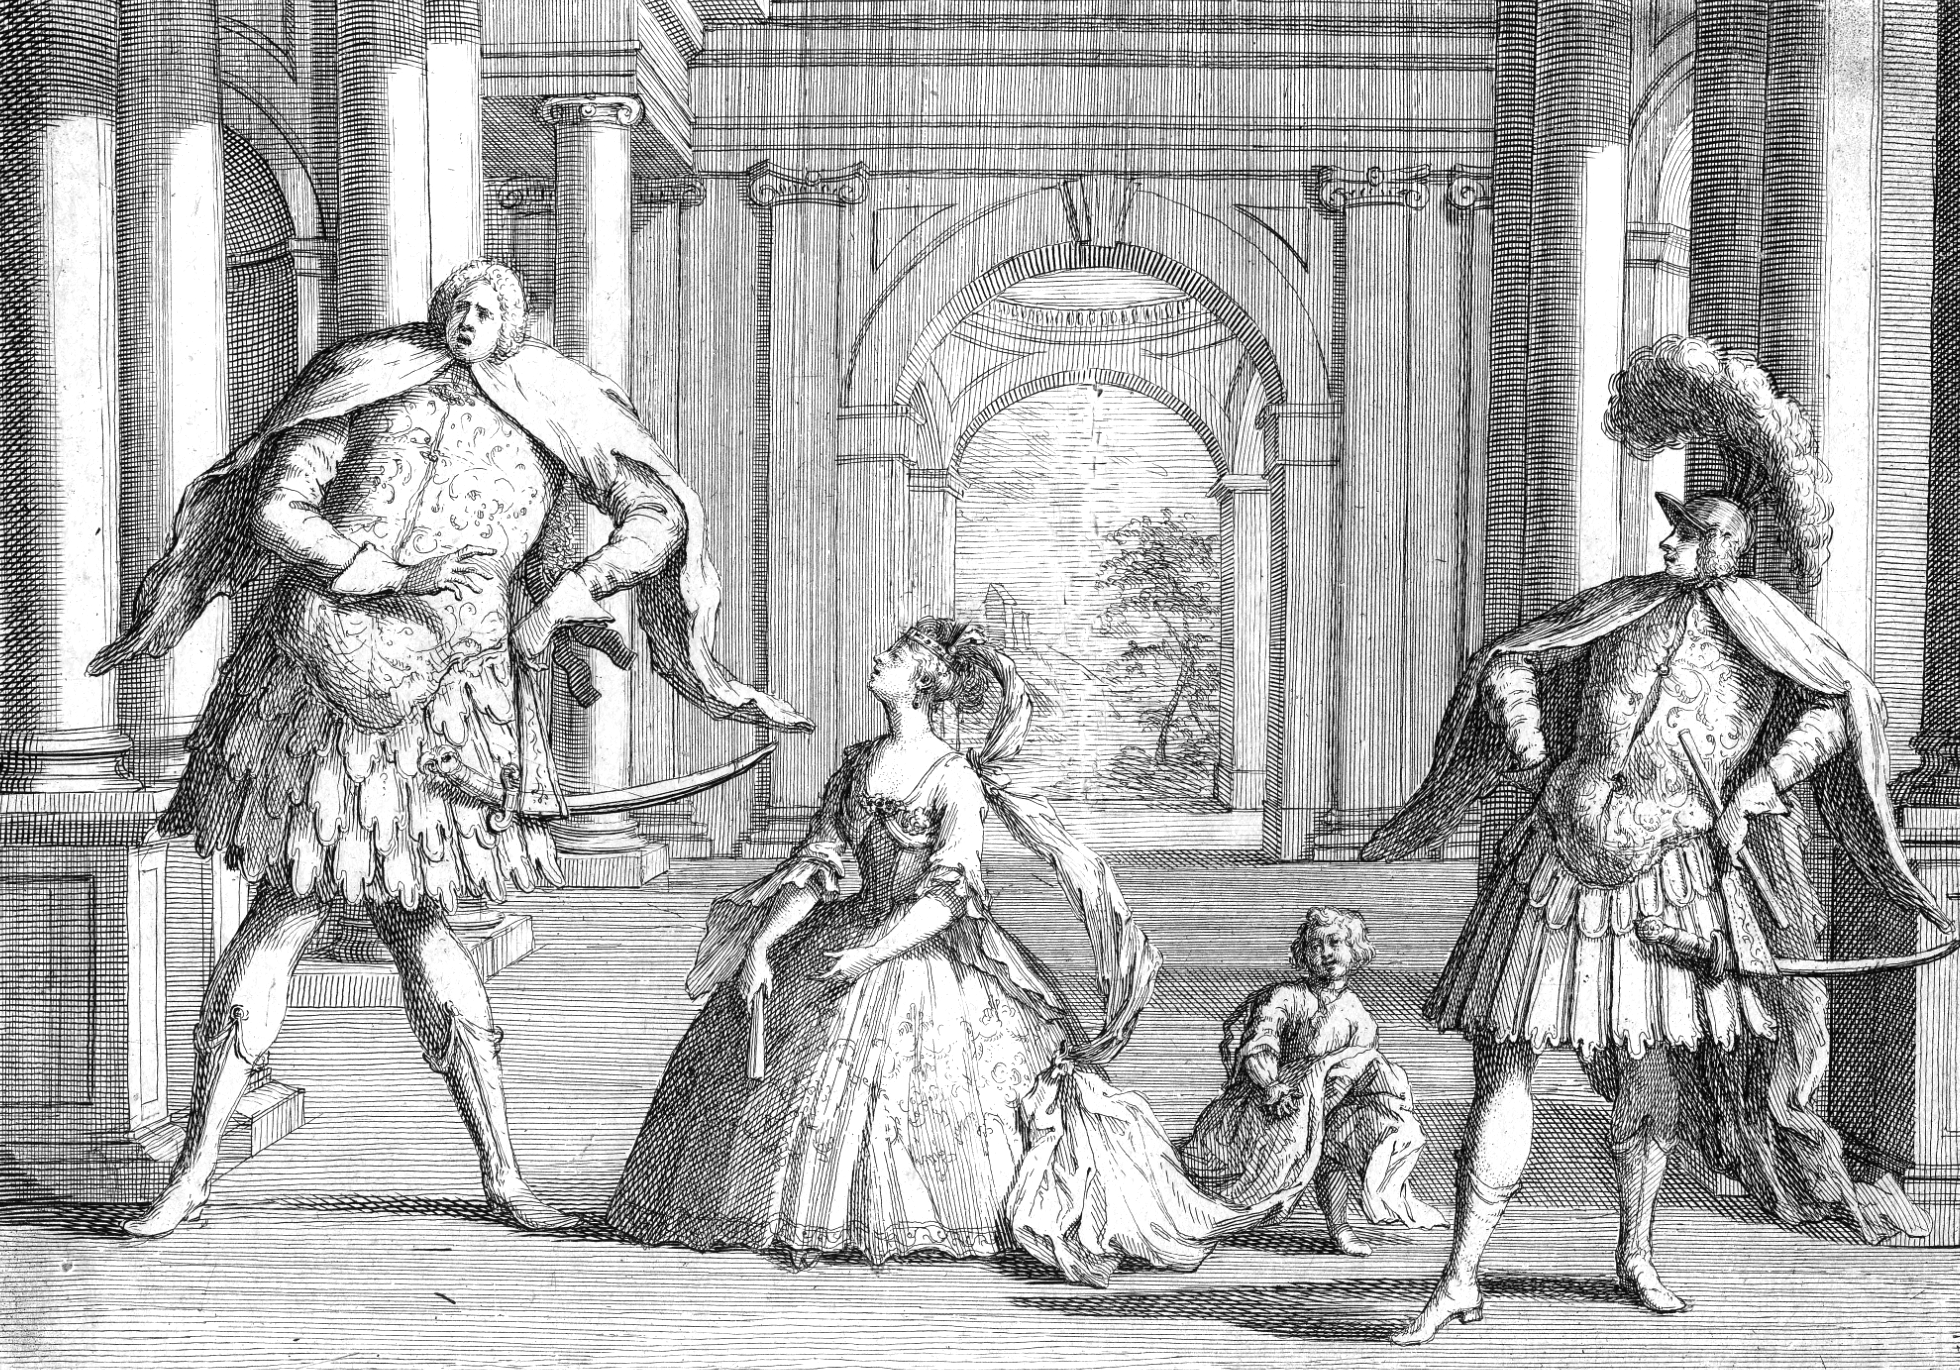 A famous sketching of the castrati Senesino (far left) and Berenstadt (far right) performing in Handel's opera, Flavio.The poor soprano, Francesca Cuzzoni, was dwarfed not only by their stature, but probably their egos!